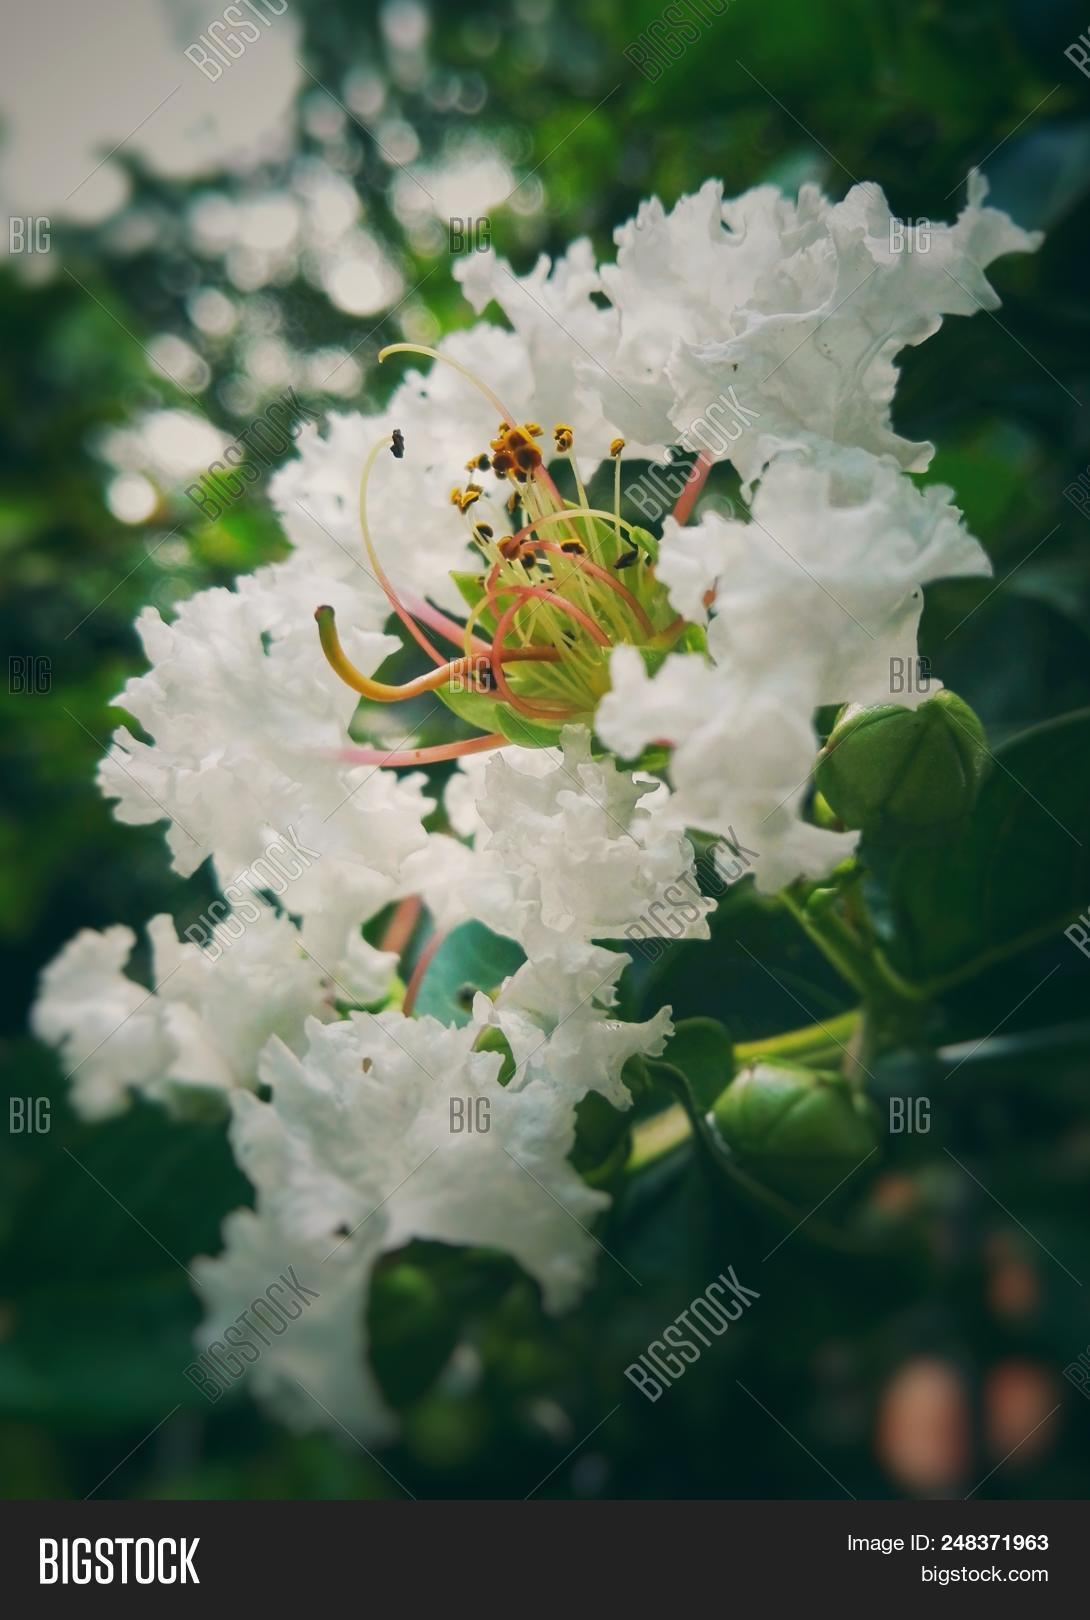 Beautiful White Flower Image Photo Free Trial Bigstock